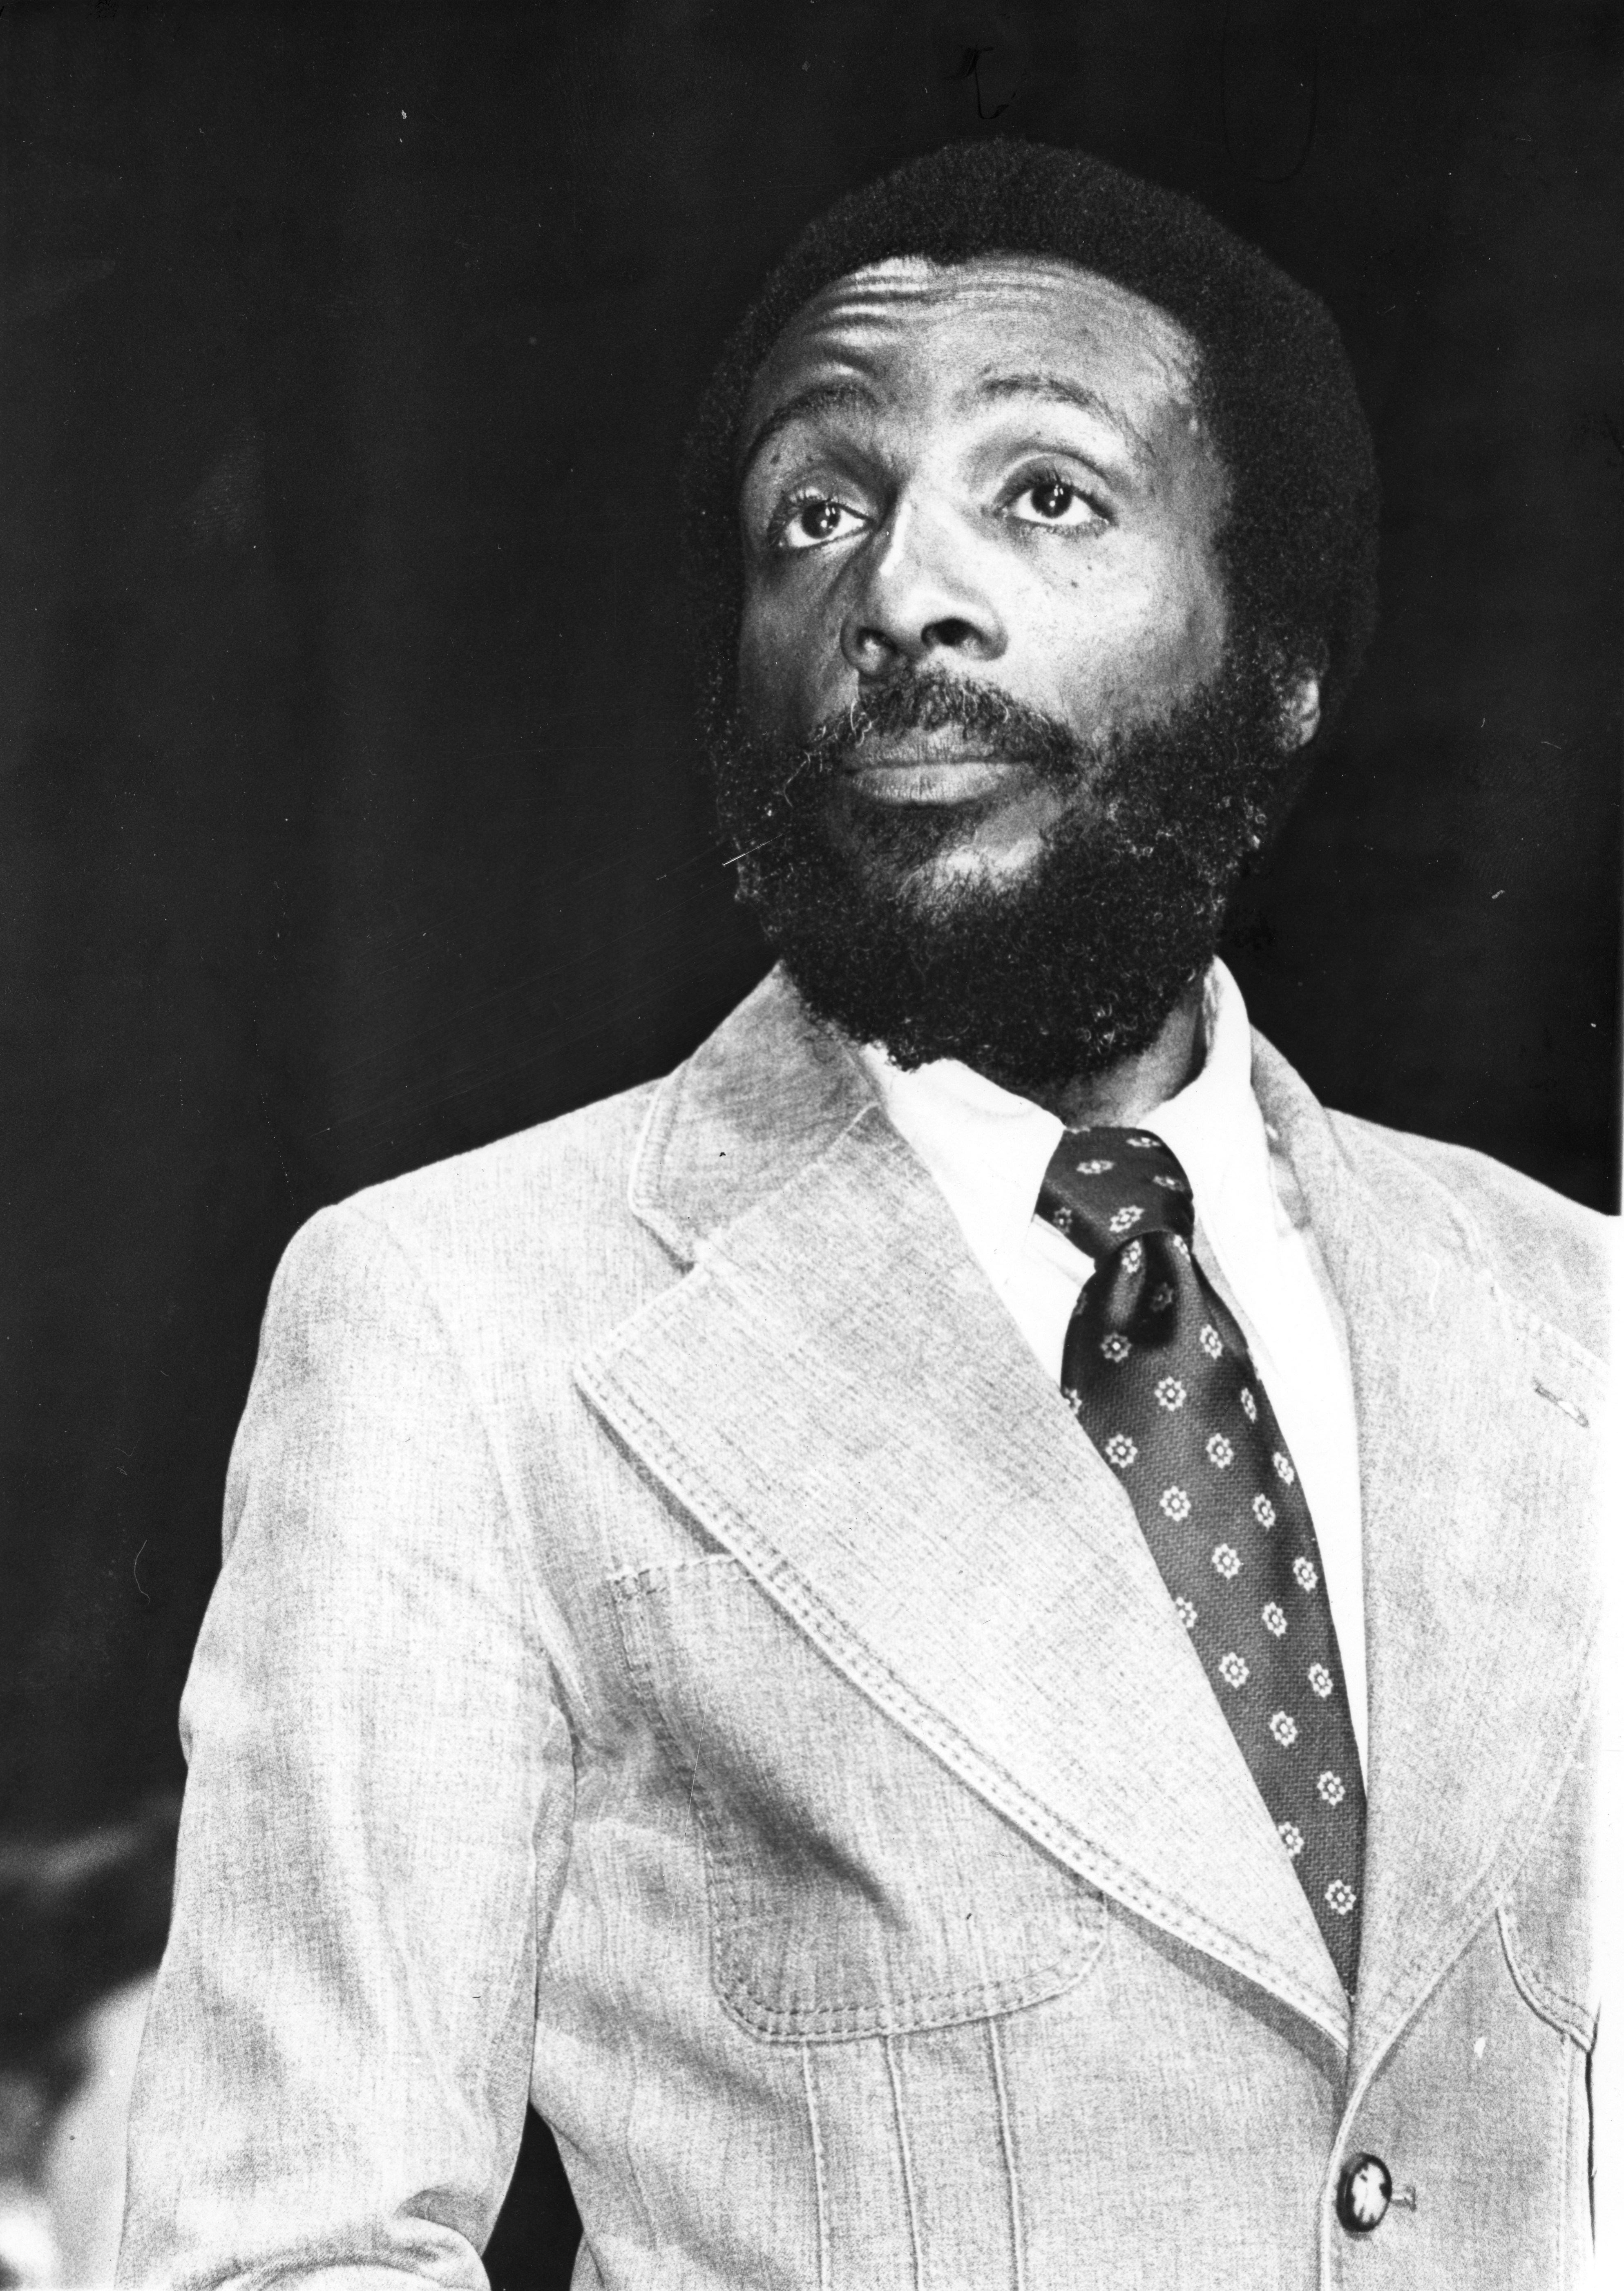 Dick gregory who is it